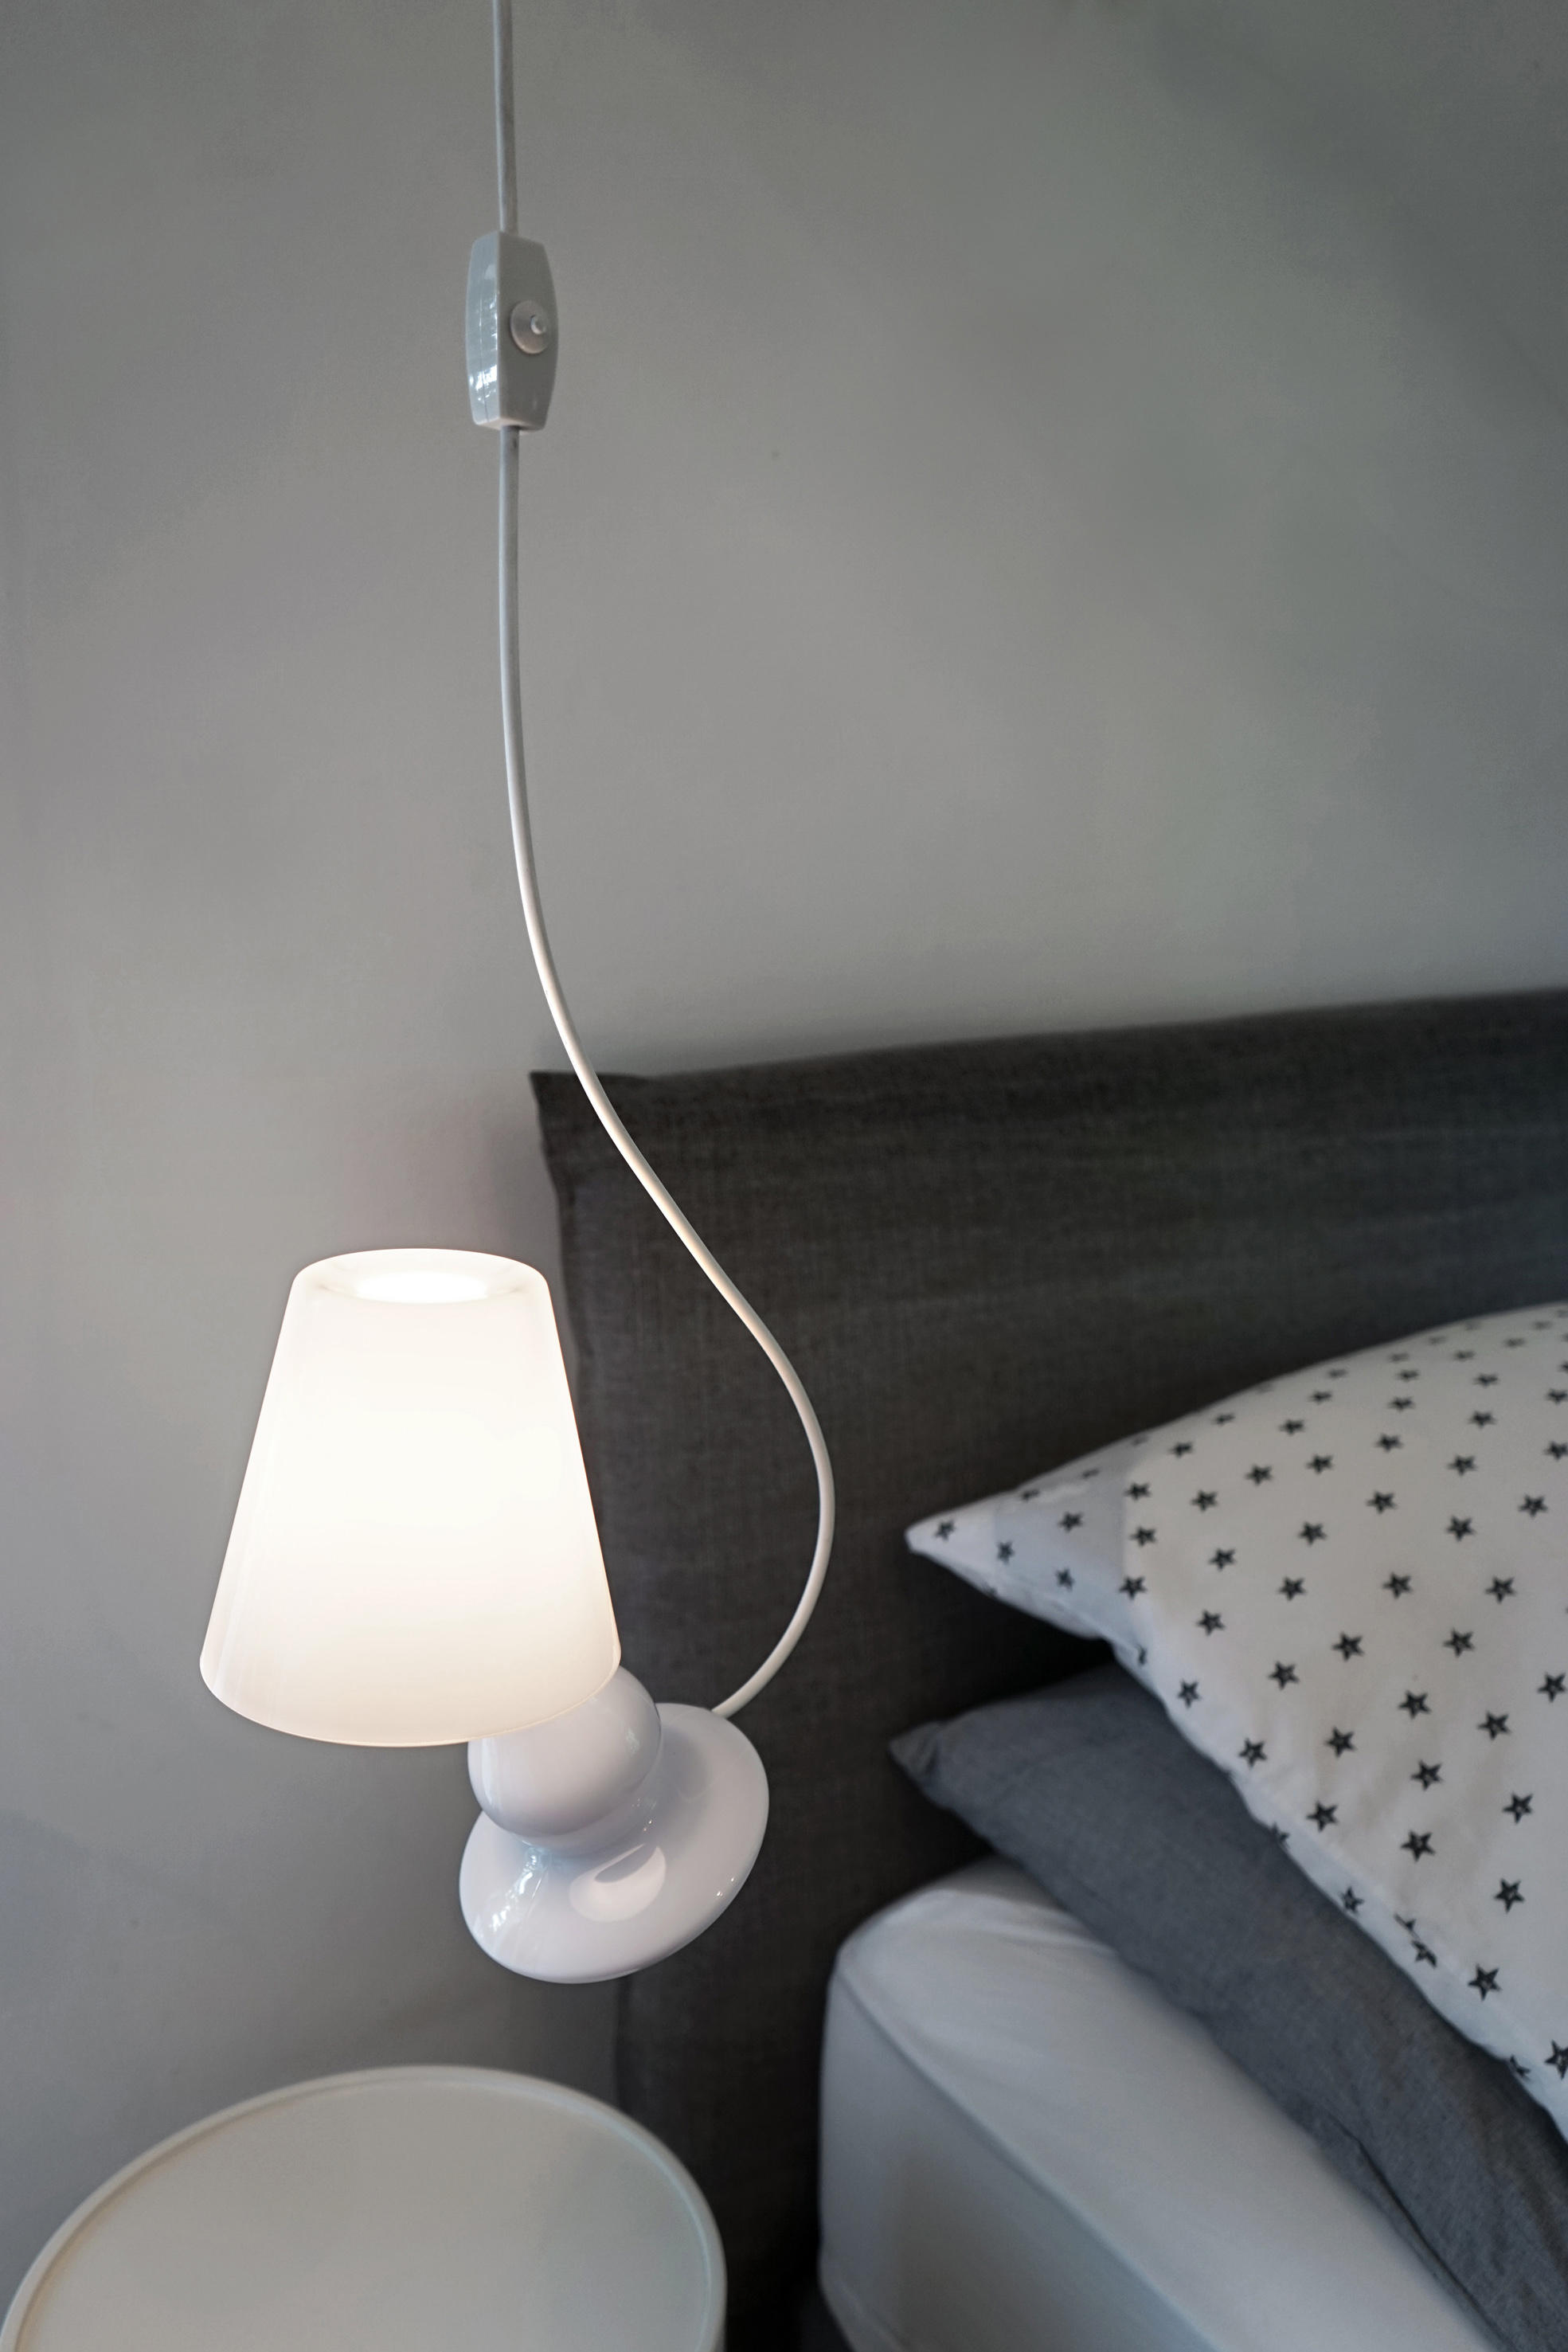 3 Arm Arc Floor Lamp >> FLAPFLAP° 10 - General lighting from next | Architonic